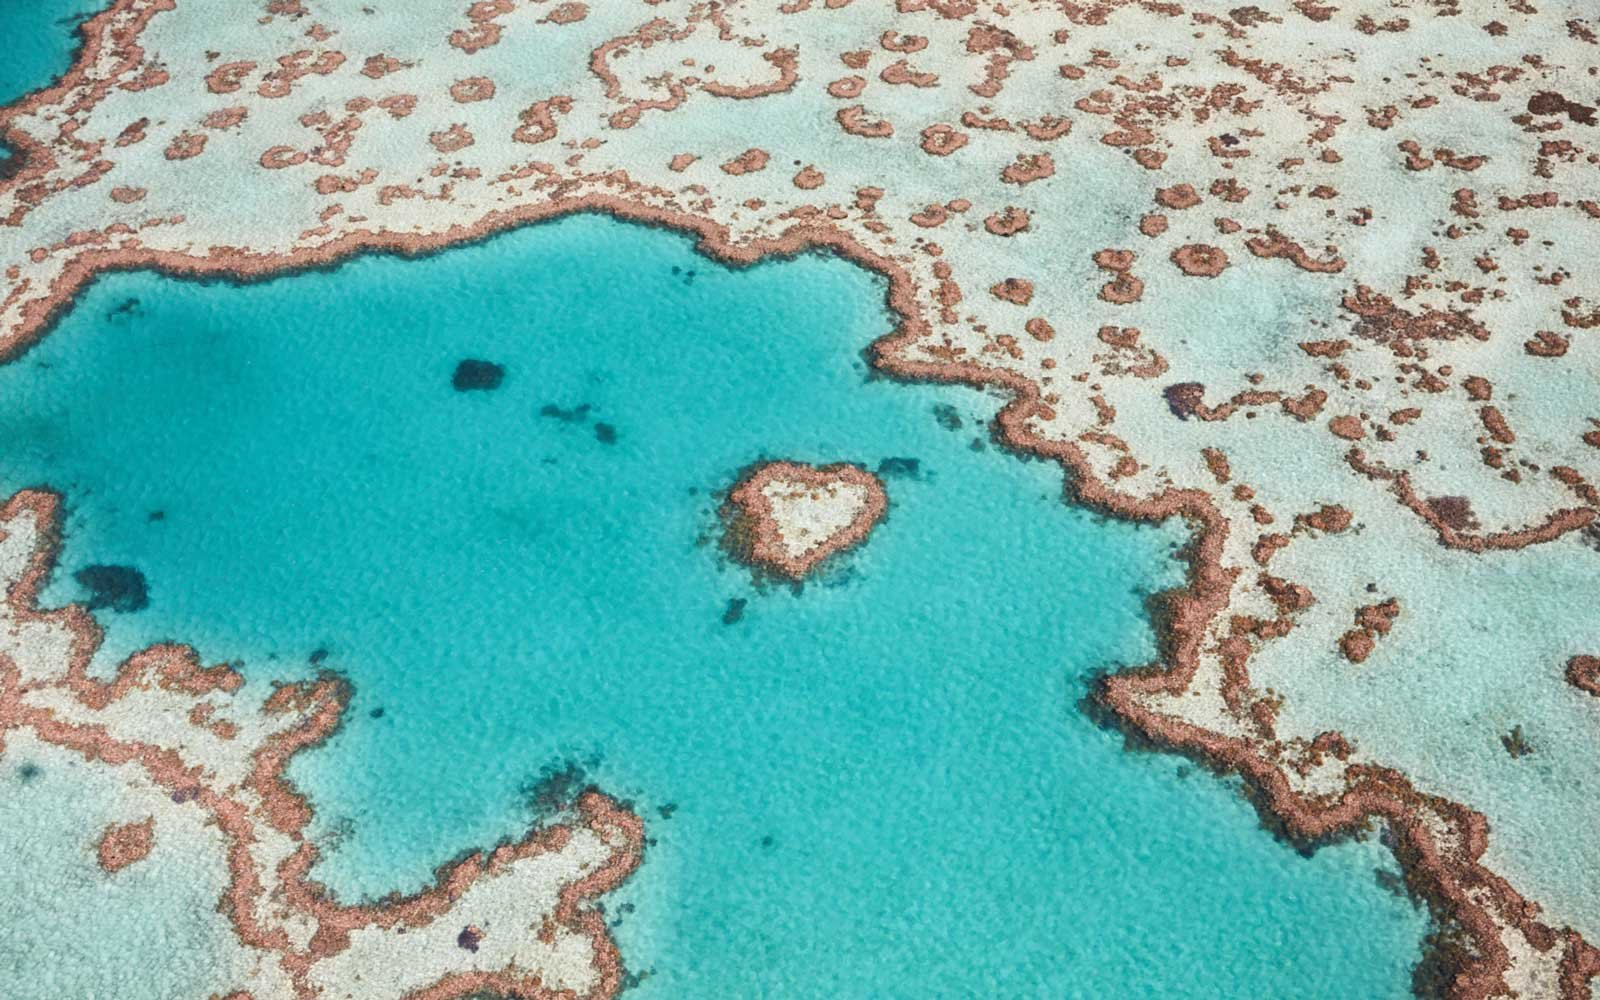 Paris Accords Will Protect The Great Barrier Reef